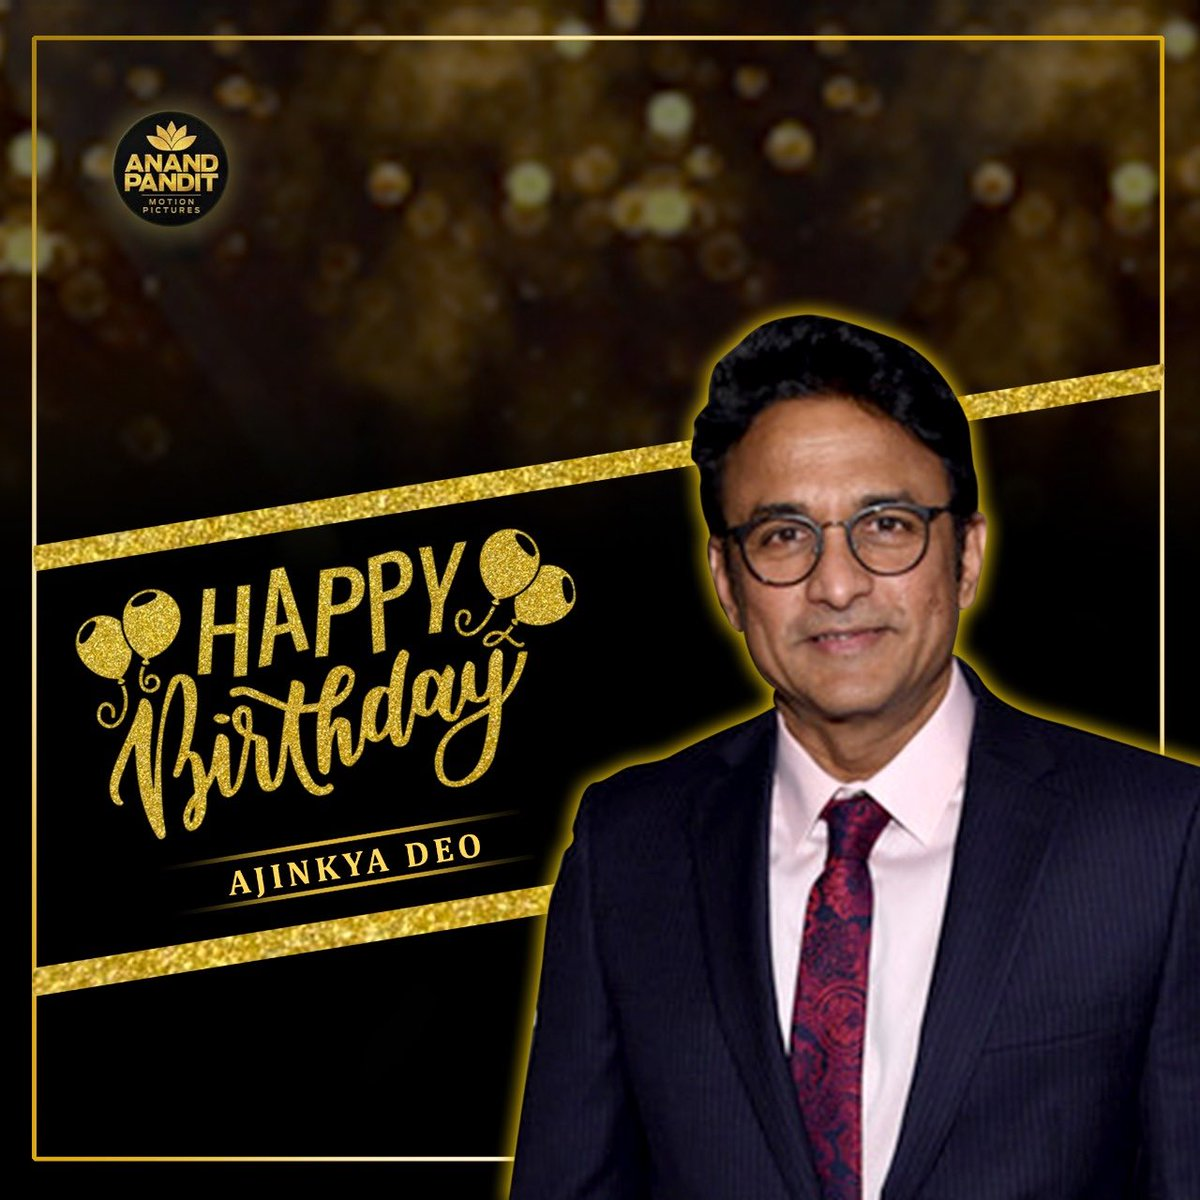 Happy birthday my friend @Ajinkyad, wishing you a spectacular day. May this year bring you lots of discoveries and great achievements. #HappyBirthday https://t.co/bQVSGlppt1